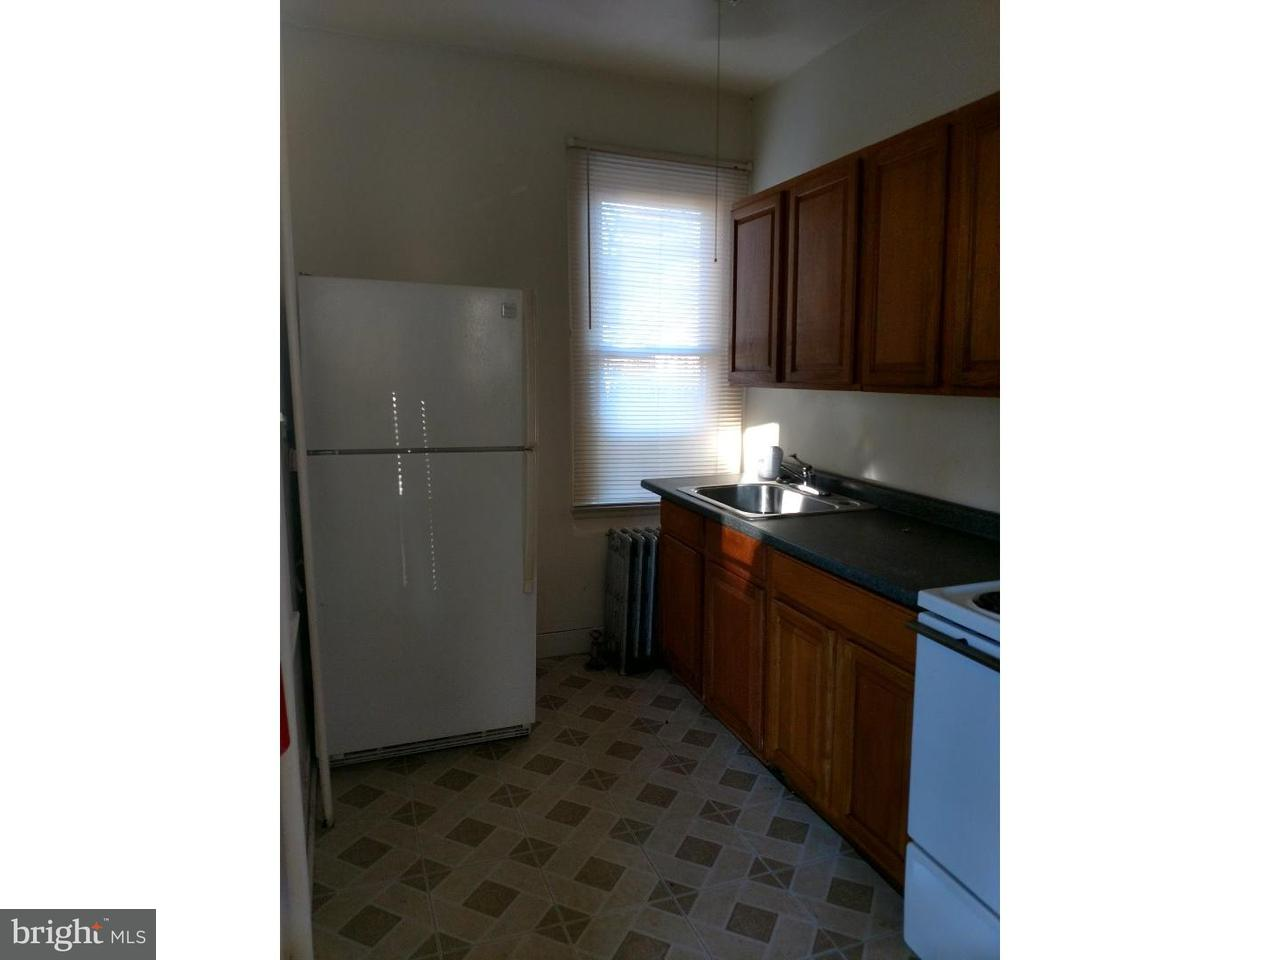 Single Family Home for Rent at 417 N DELAWARE ST #5 Paulsboro, New Jersey 08066 United States